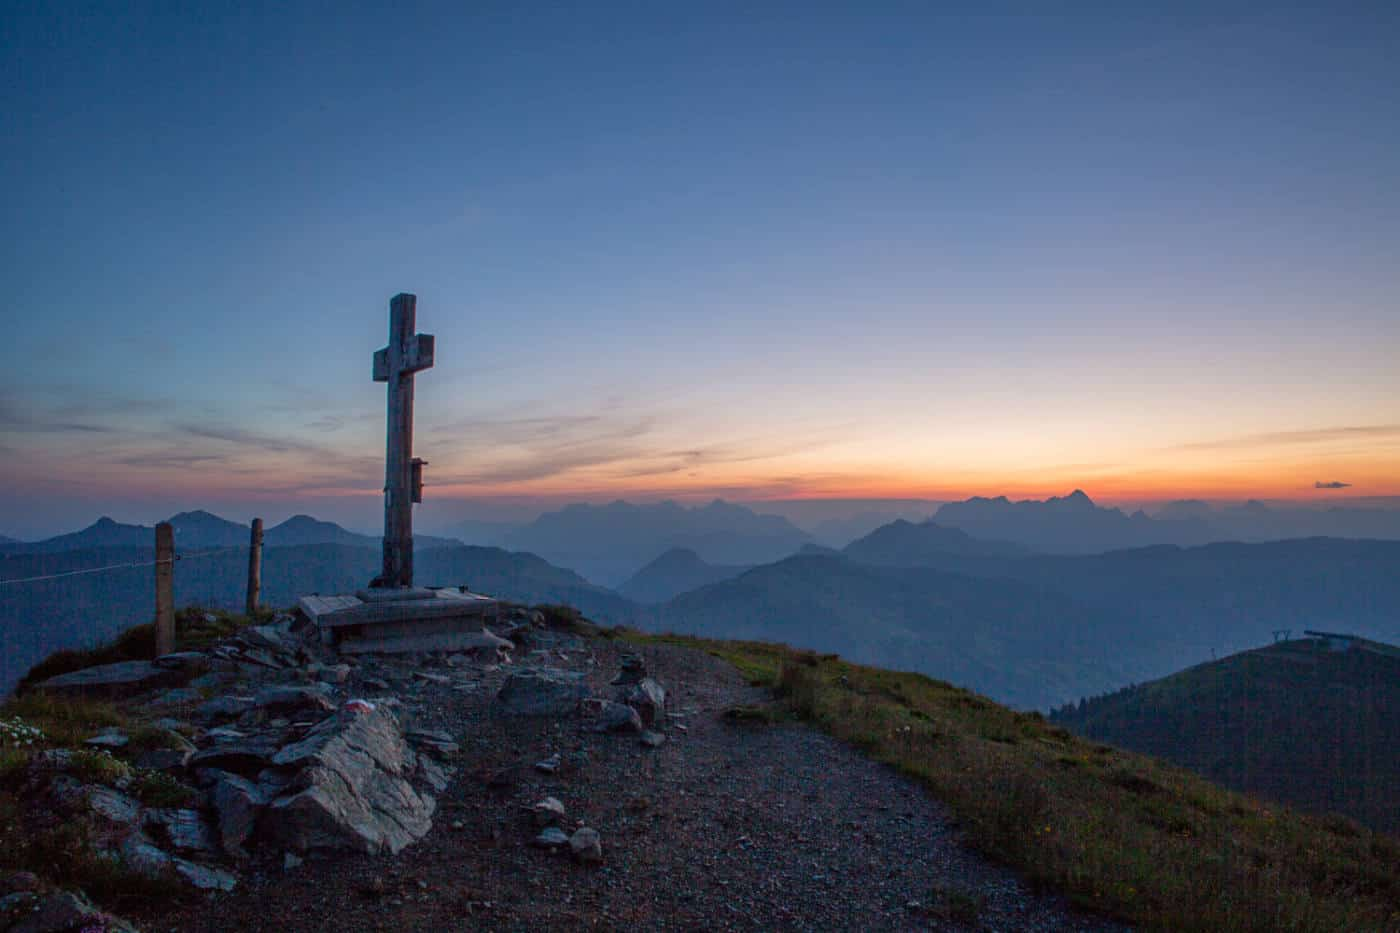 Sunrise hike in in Saalbach Hinterglemm Austria